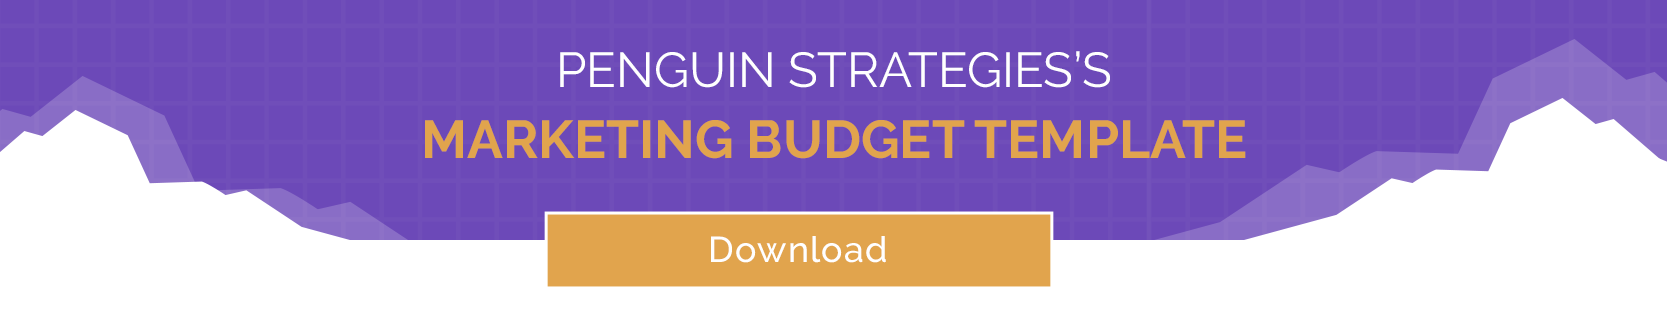 Penguin Strategies's Marketing Budget Template CTA - small